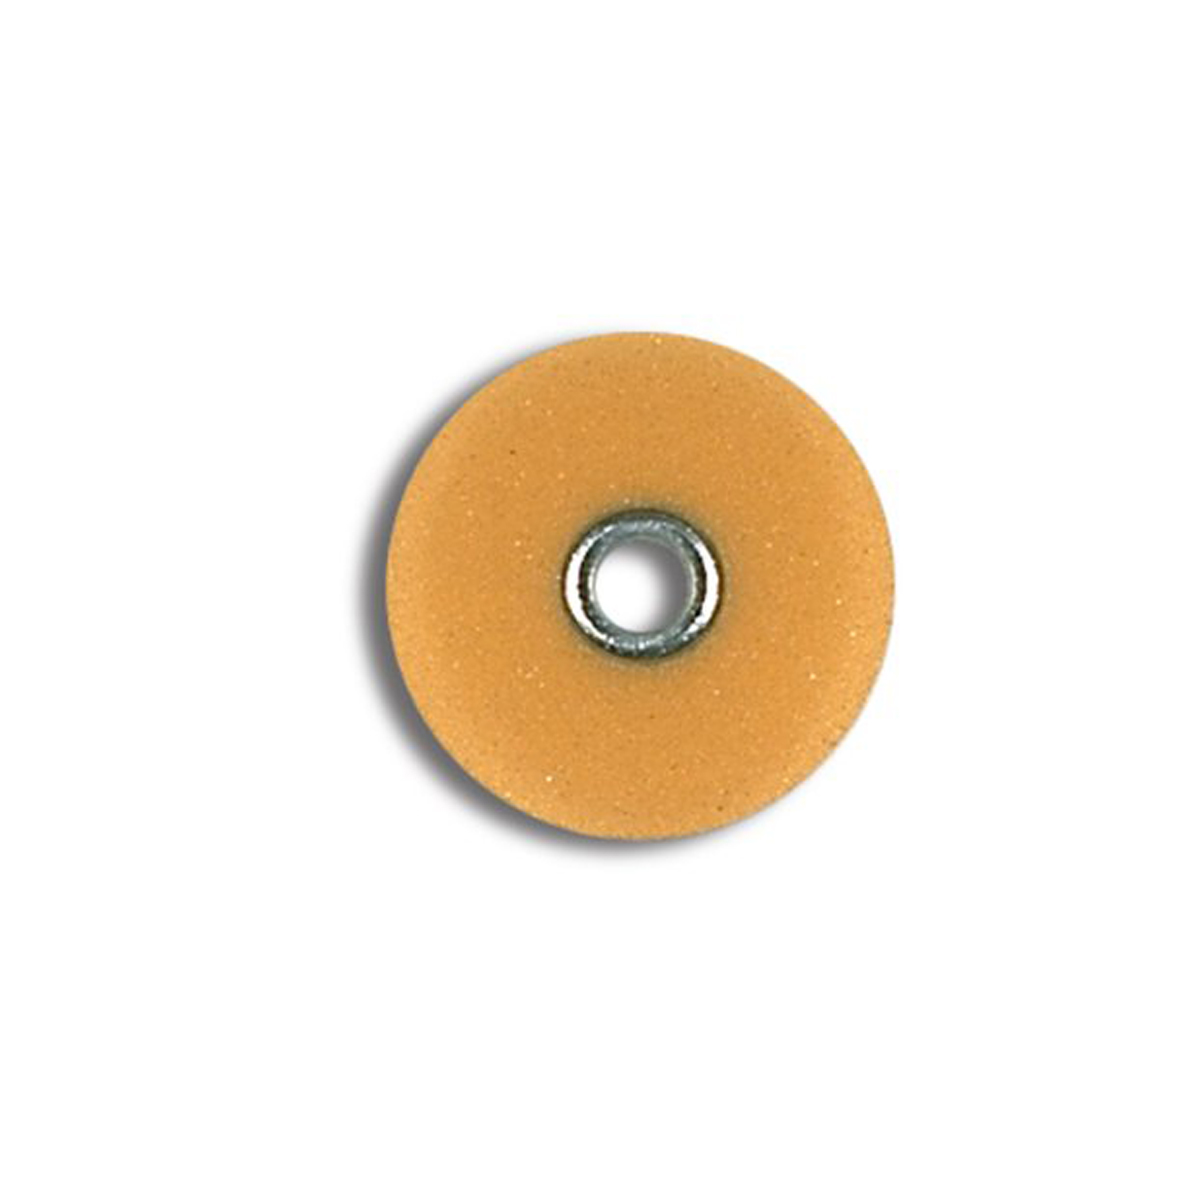 SOFLEX DISQUE 12,7MM/FIN/ORANGE(85) -2382F-